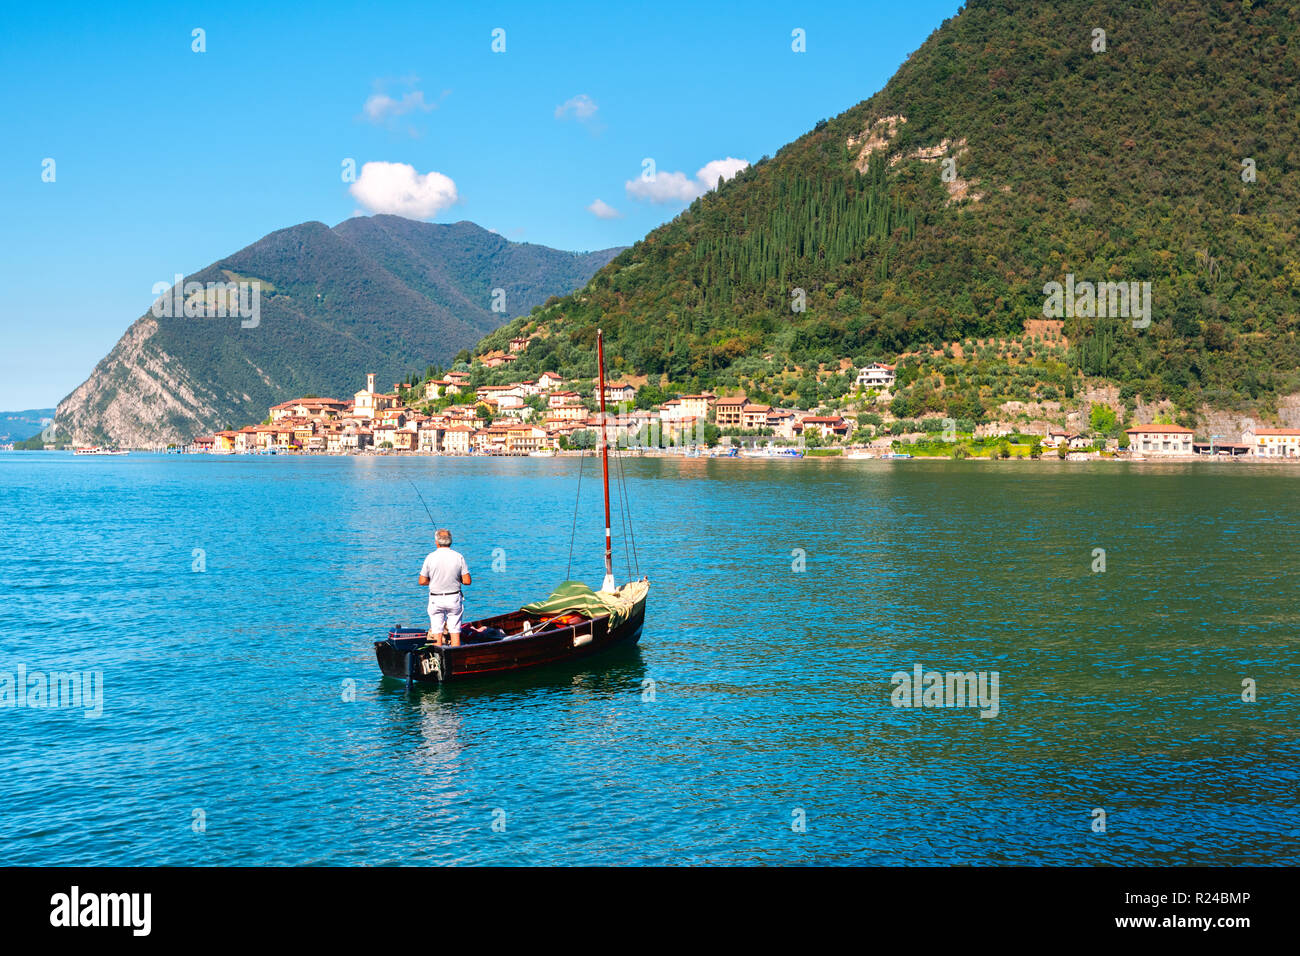 Fisherman with a view of Peschiera Maraglio, Monte Isola, the largest lake island in Europe, Province of Brescia, Italy, Europe - Stock Image